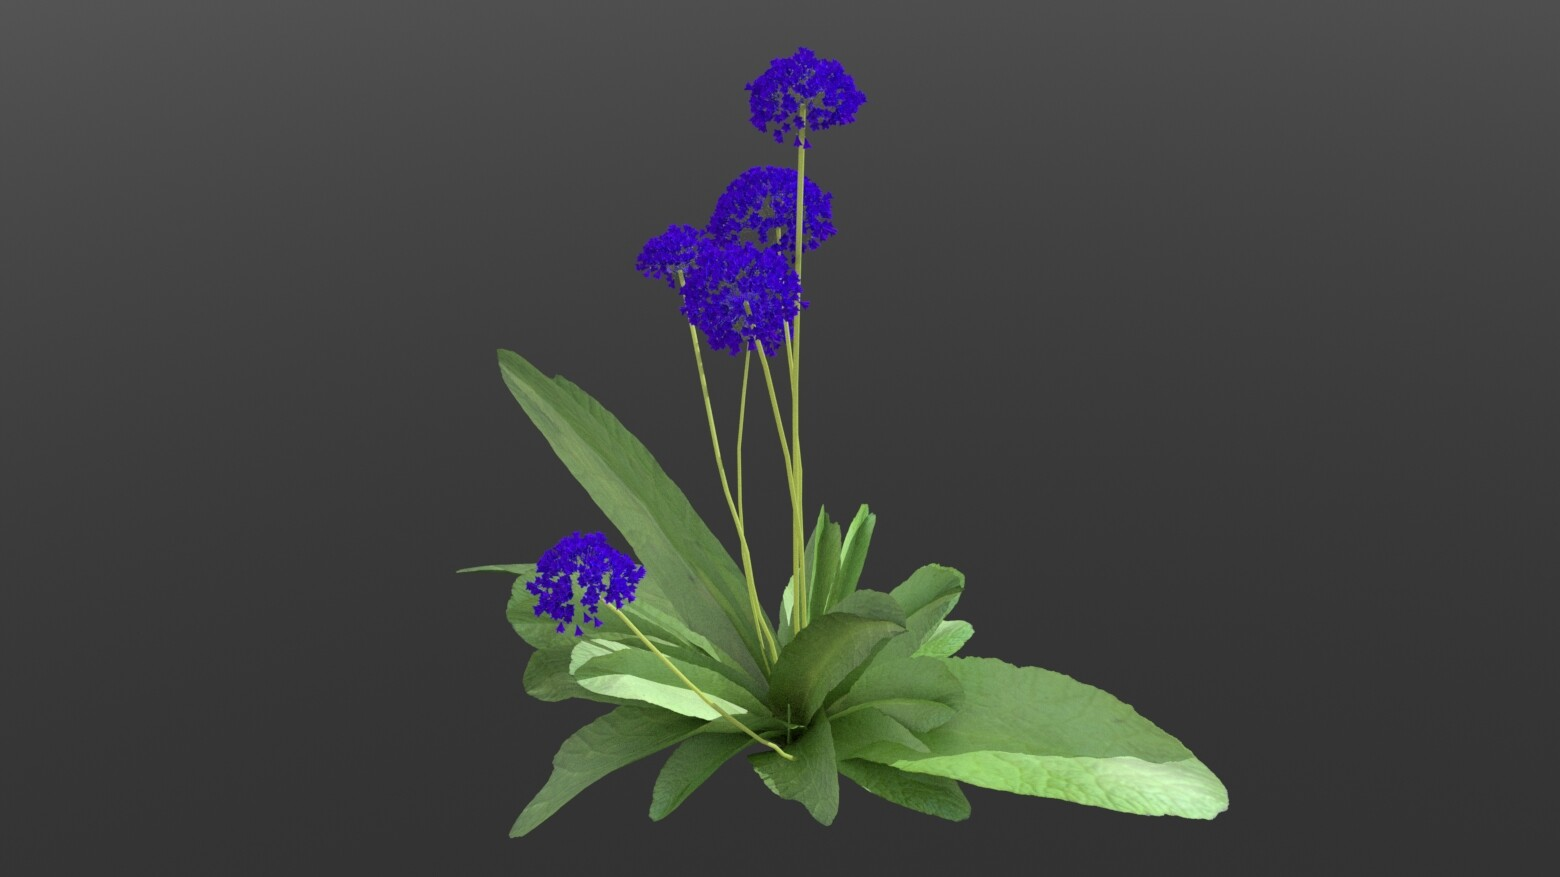 Old work - flowers on modeled statice plant